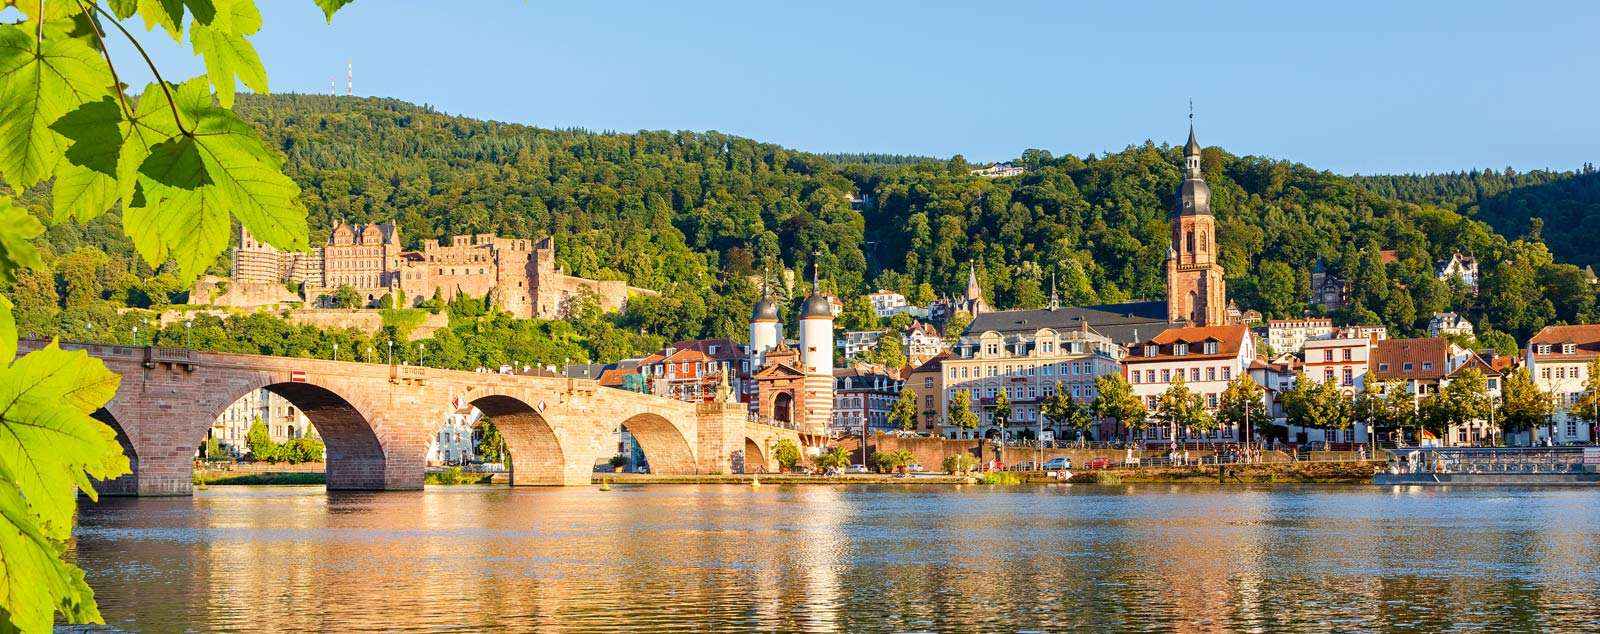 A stone bridge made of arches streches across a calm river to an old town overlooked by a castle and green forest